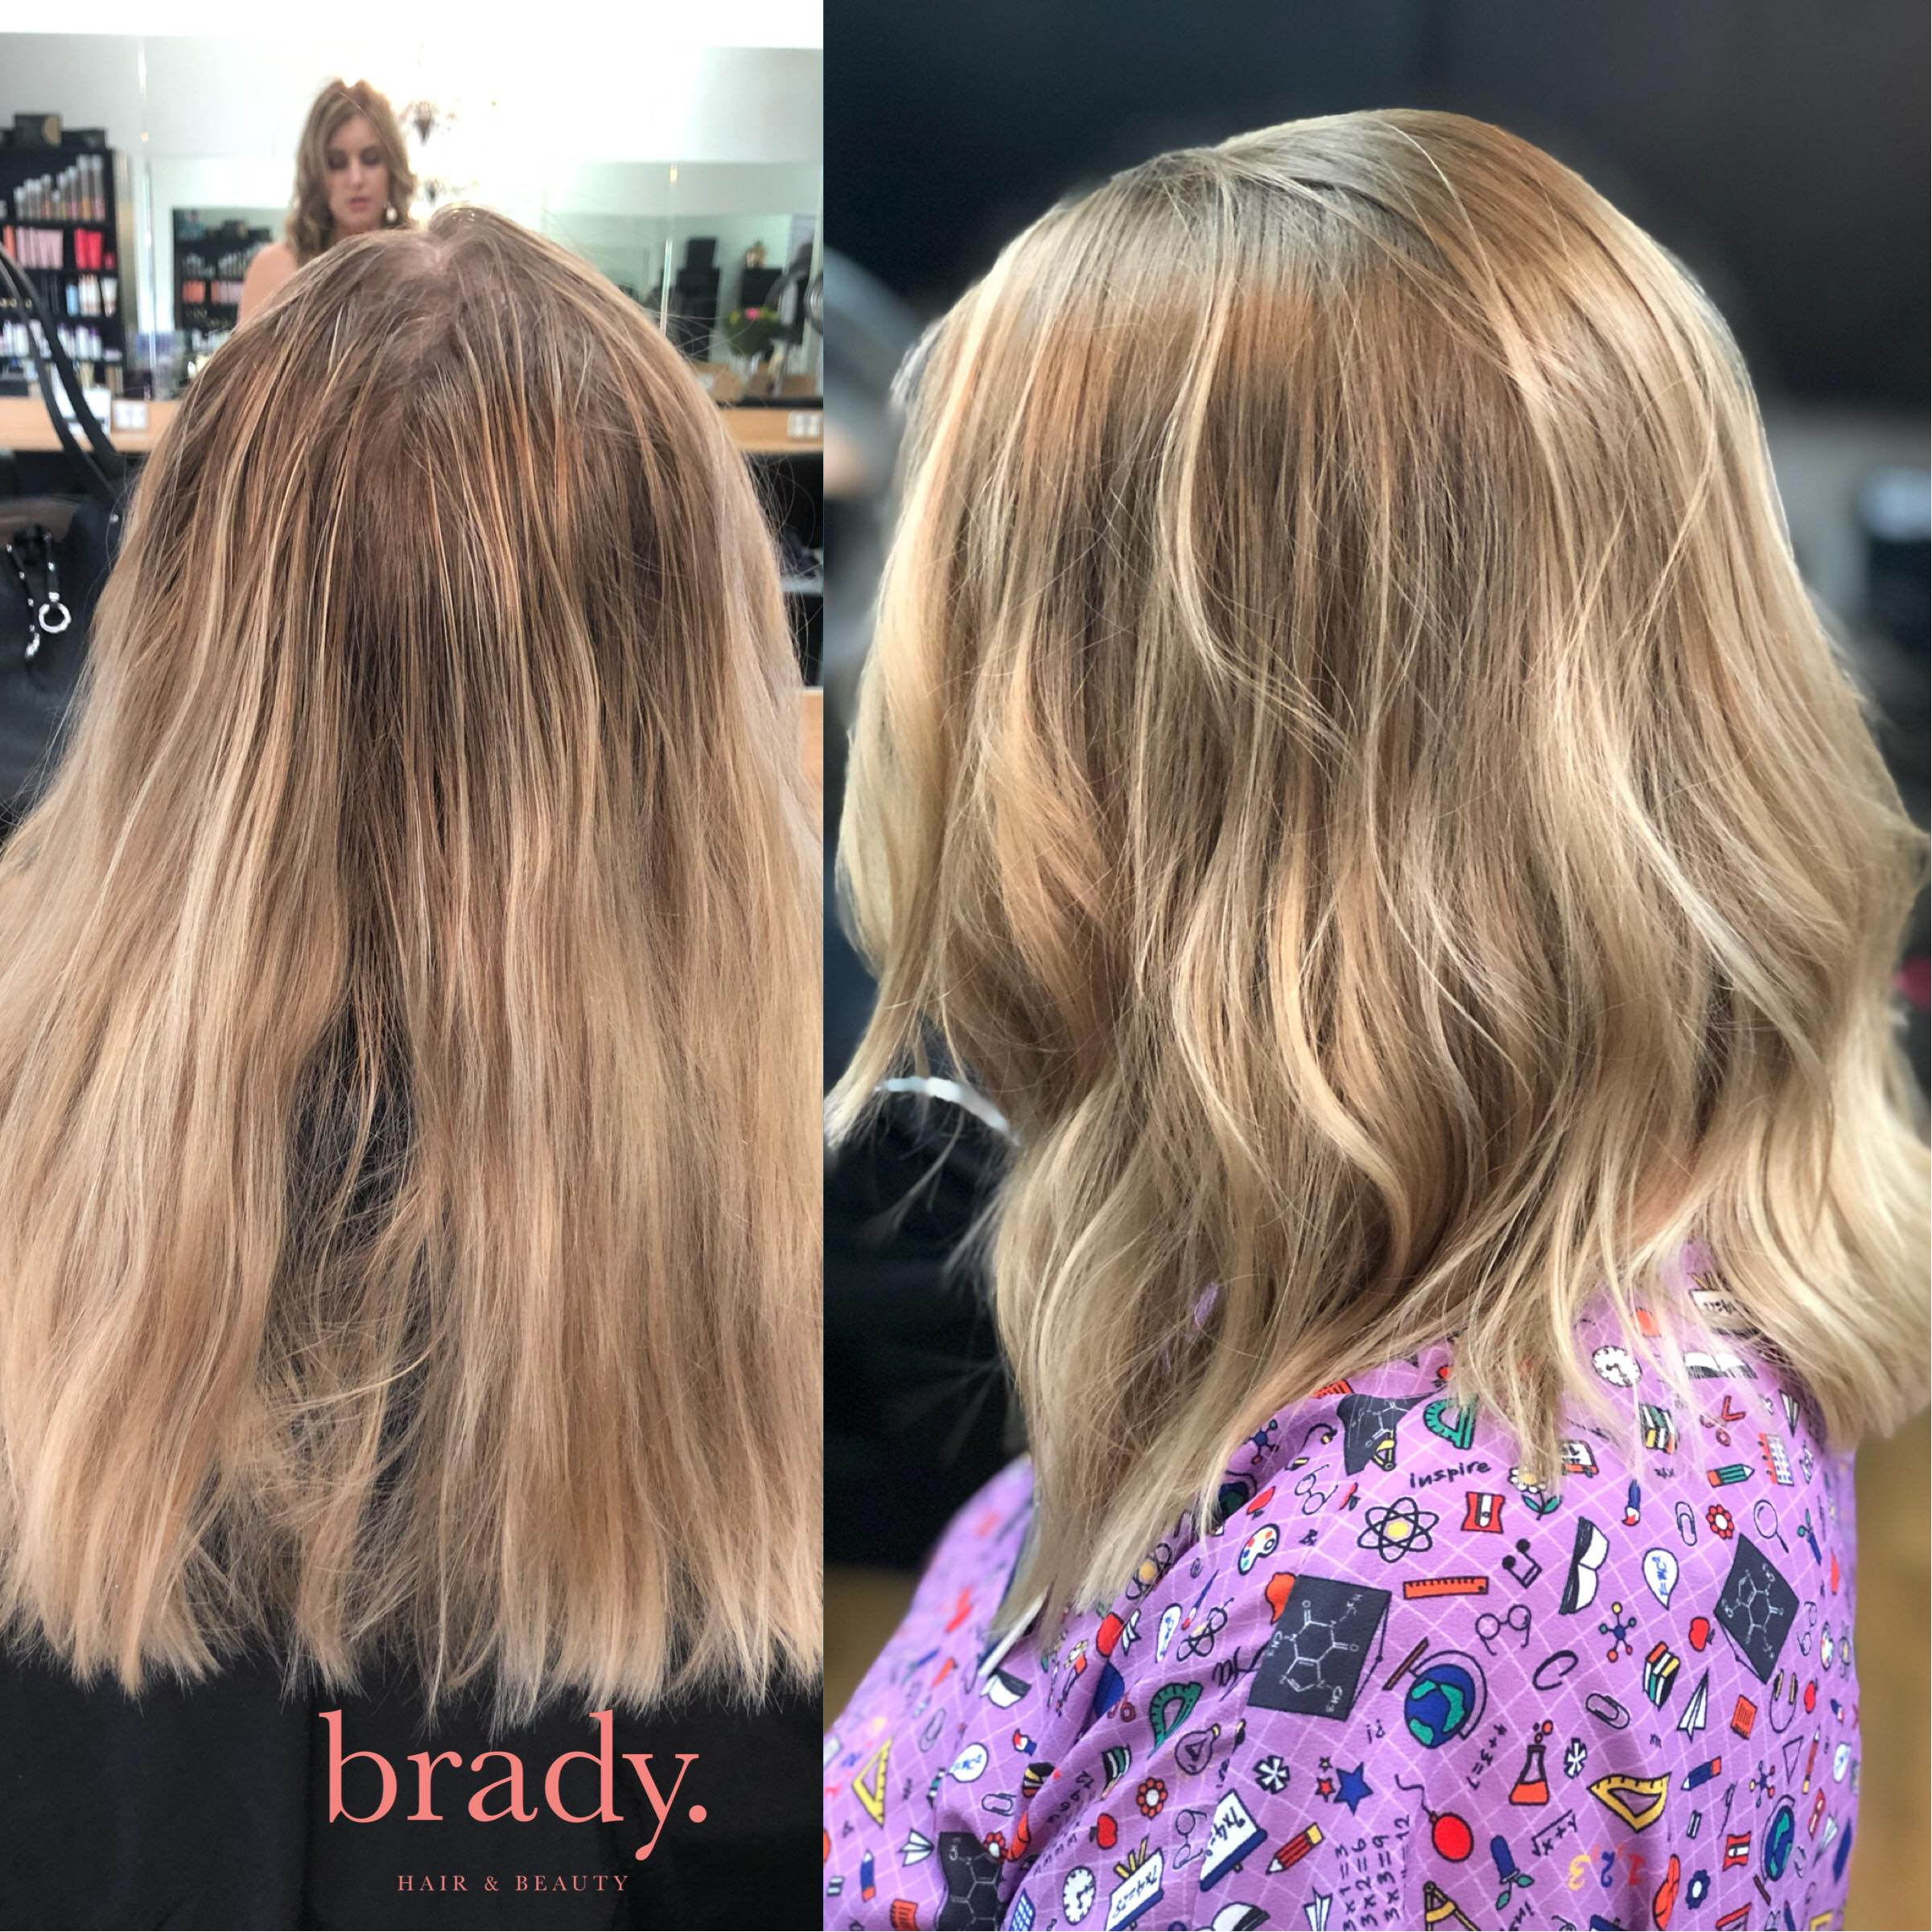 Before and after picture of hairstyle. Final result: woman with medium ash blonde wavy hair. Styled by Brady. Hair & Beauty, Toowong, Brisbane.